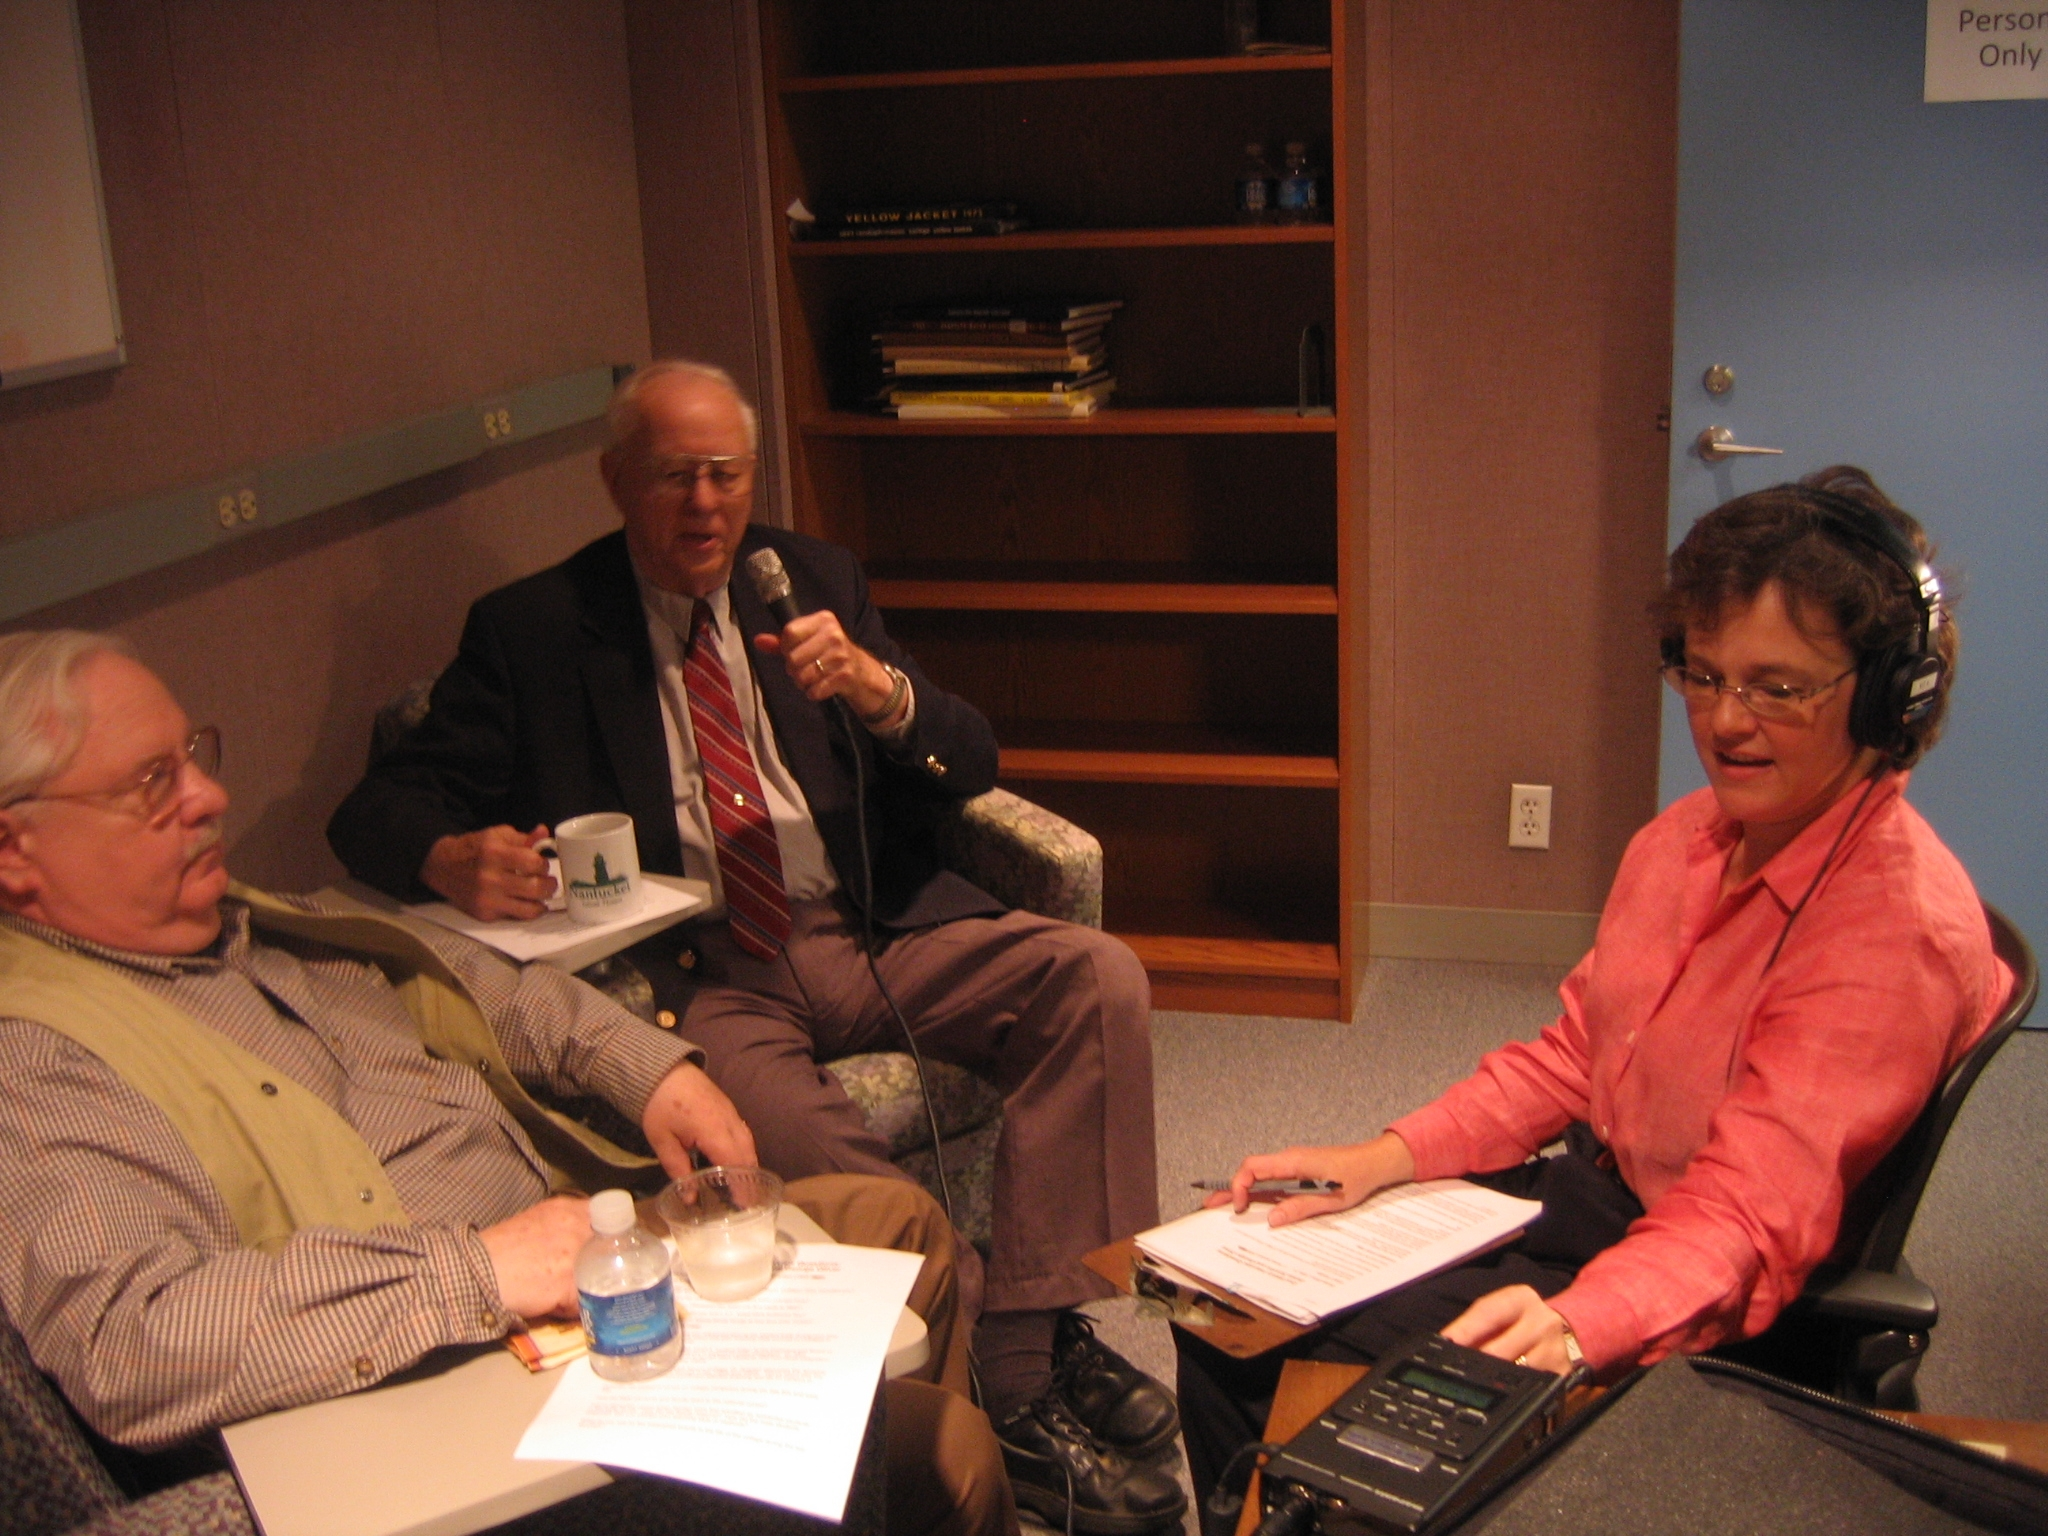 Lynda Wright interviewing James Scanlon and George Brown Oliver